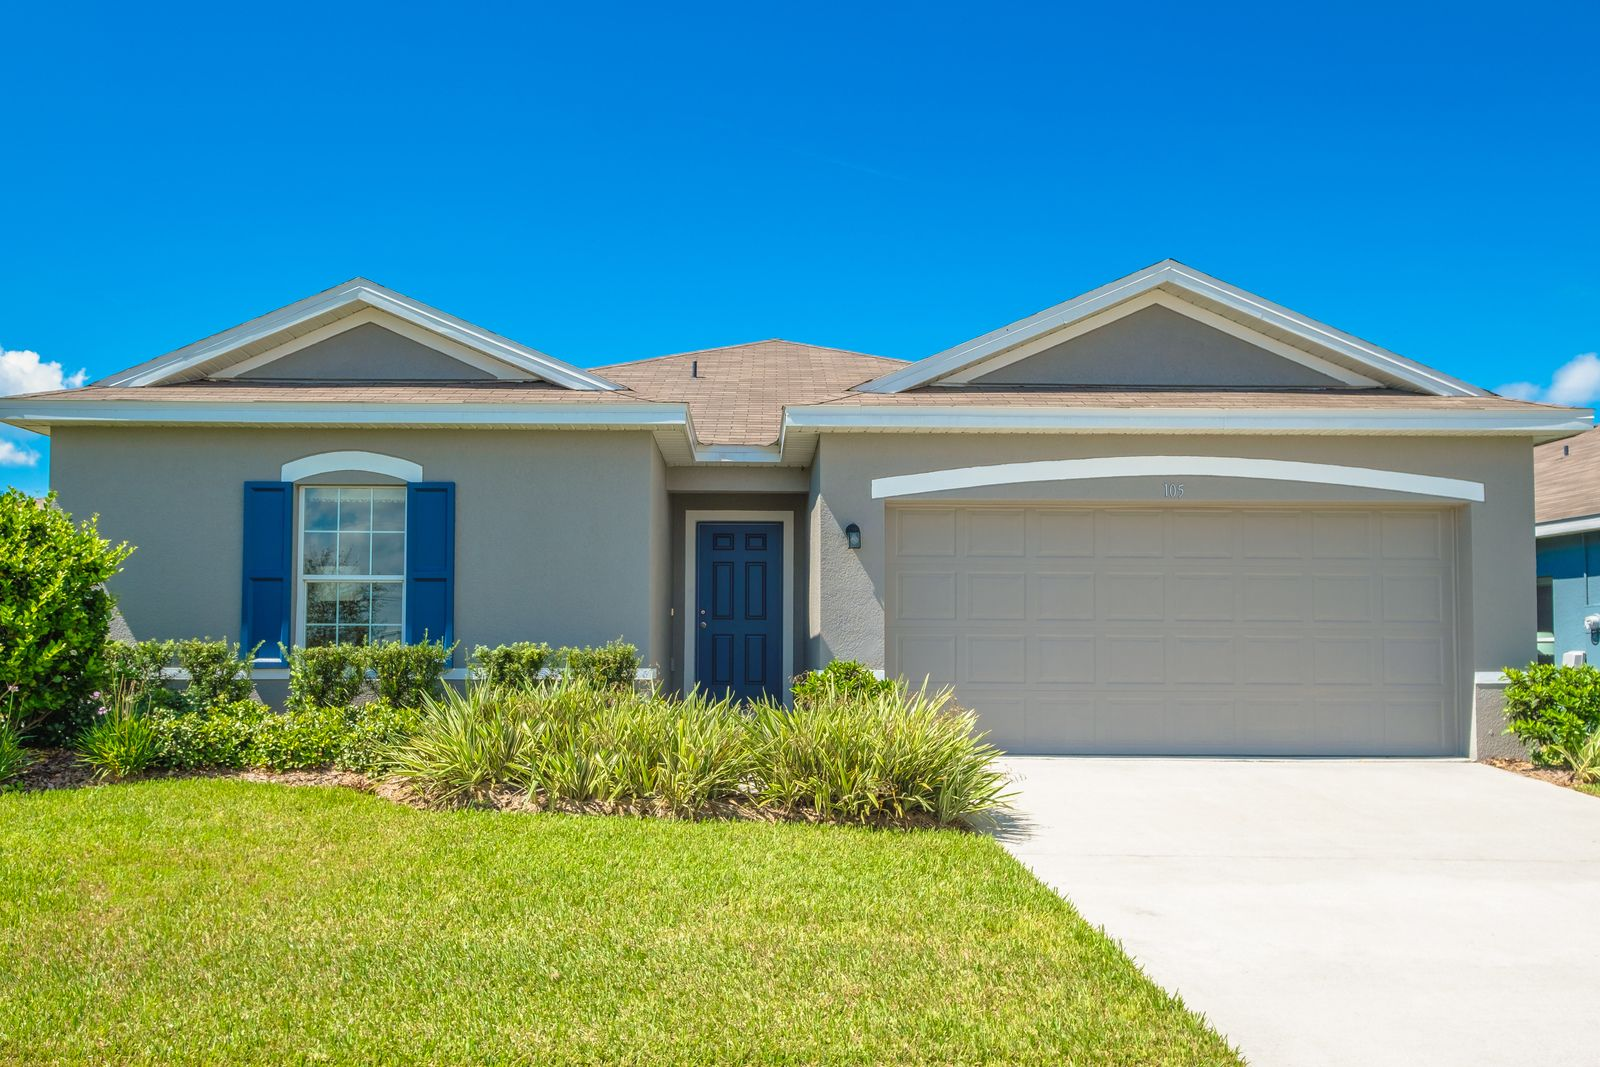 Welcome to Eagle Landing!:Where affordability meets lakeside living. Close to both Tampa and Orlando while conveniently close to US 27. NO CDD & Low HOA. From the upper $100s. Schedule a visit today!Se habla Español.